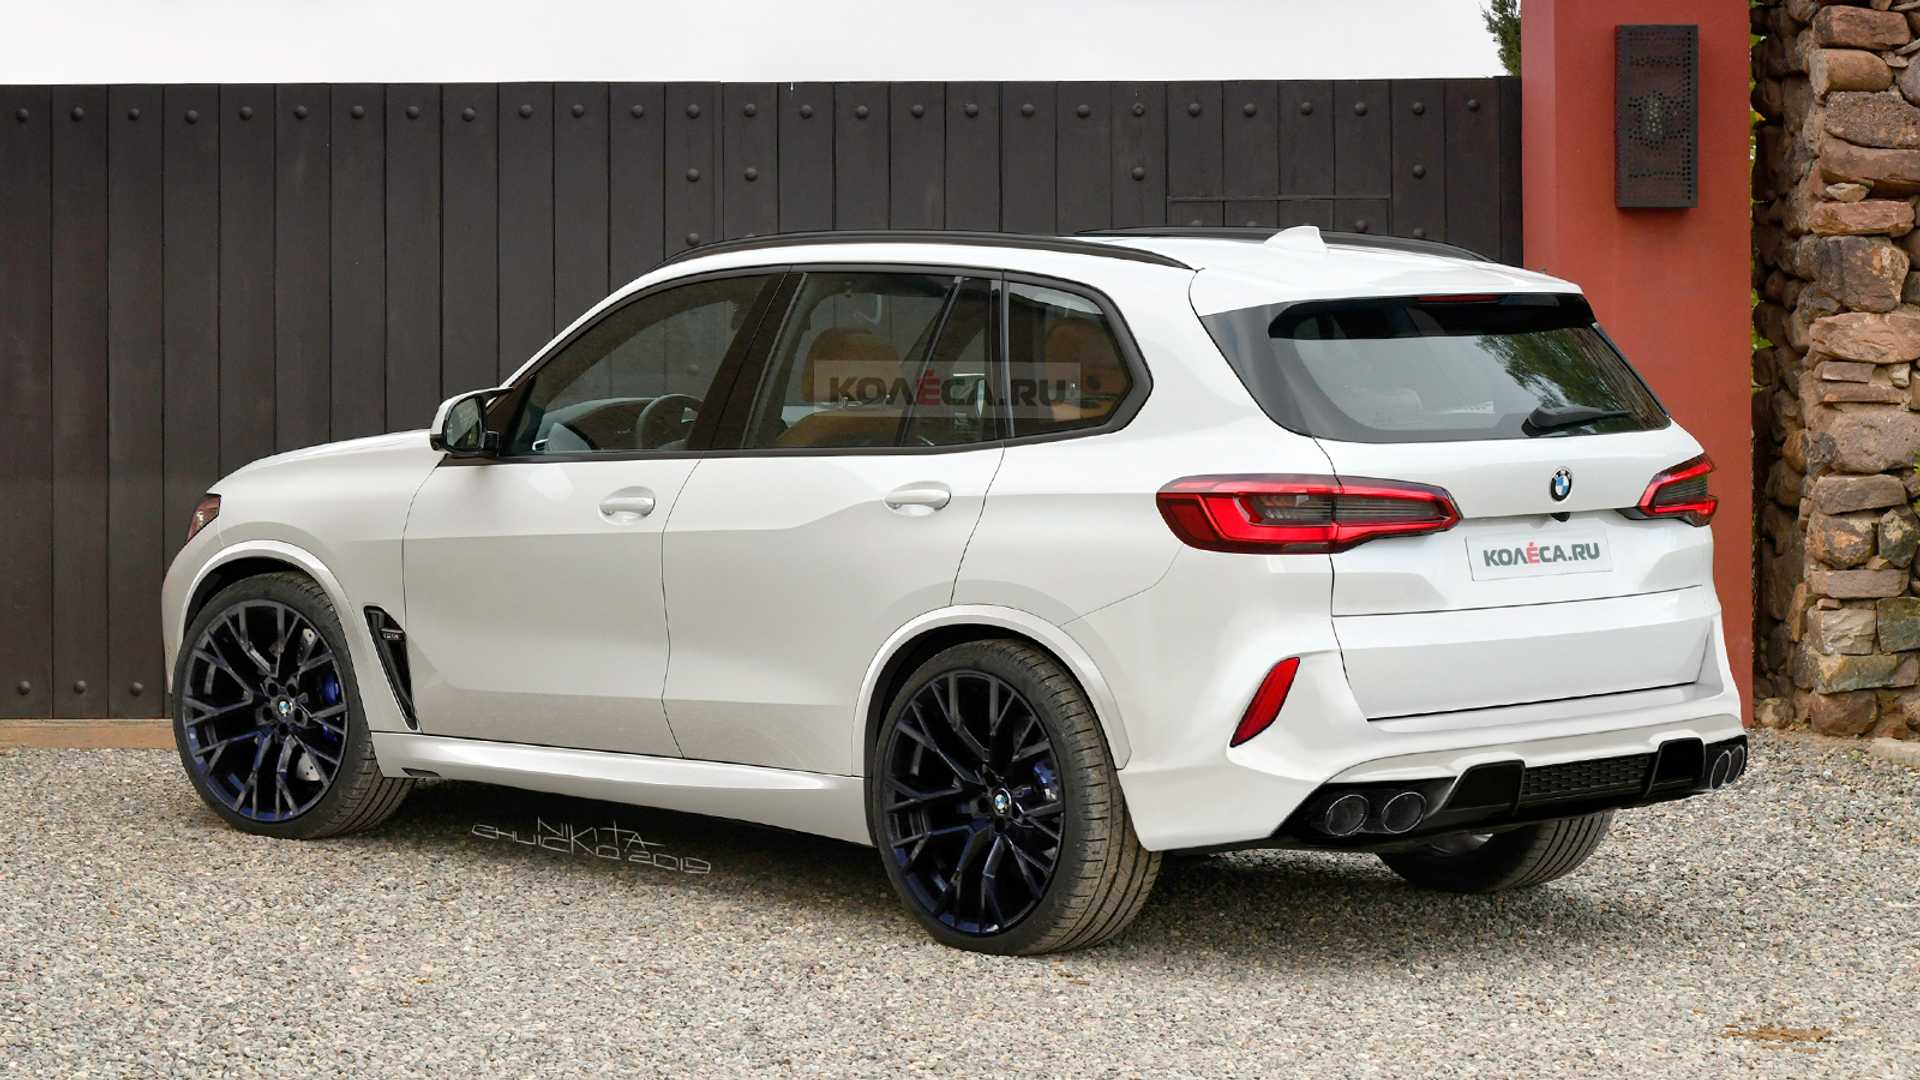 88 Great When Will 2020 BMW X5 Be Released Photos for When Will 2020 BMW X5 Be Released